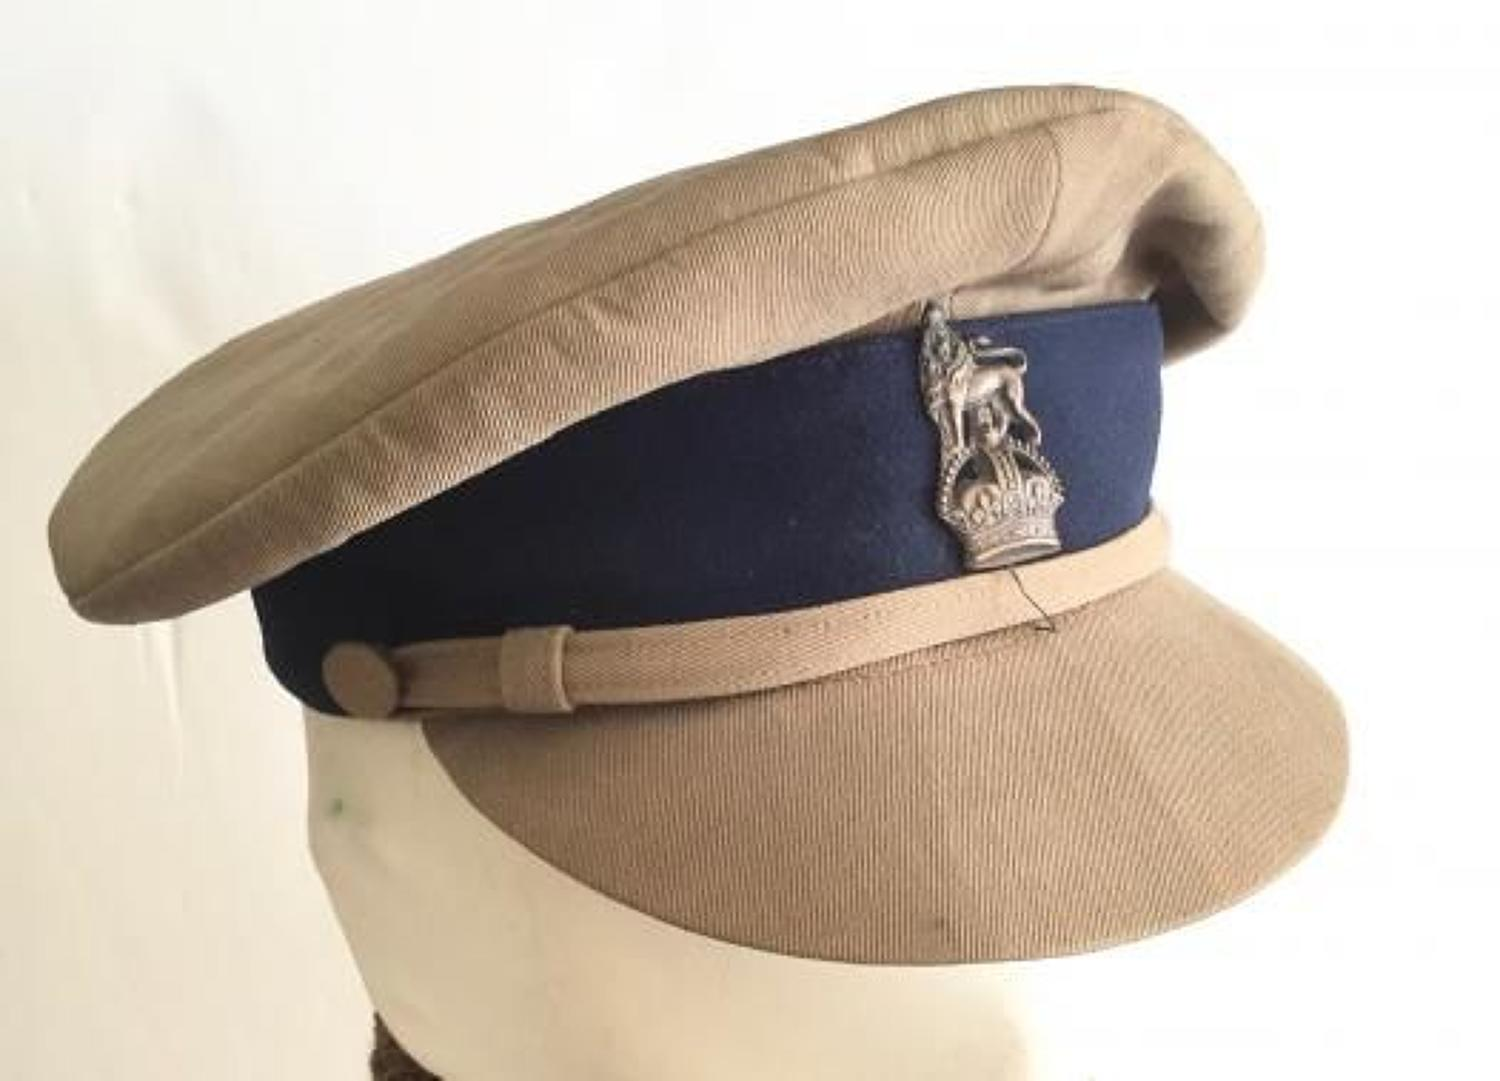 WW1 Middle East Ordnance Staff Officer Cap.